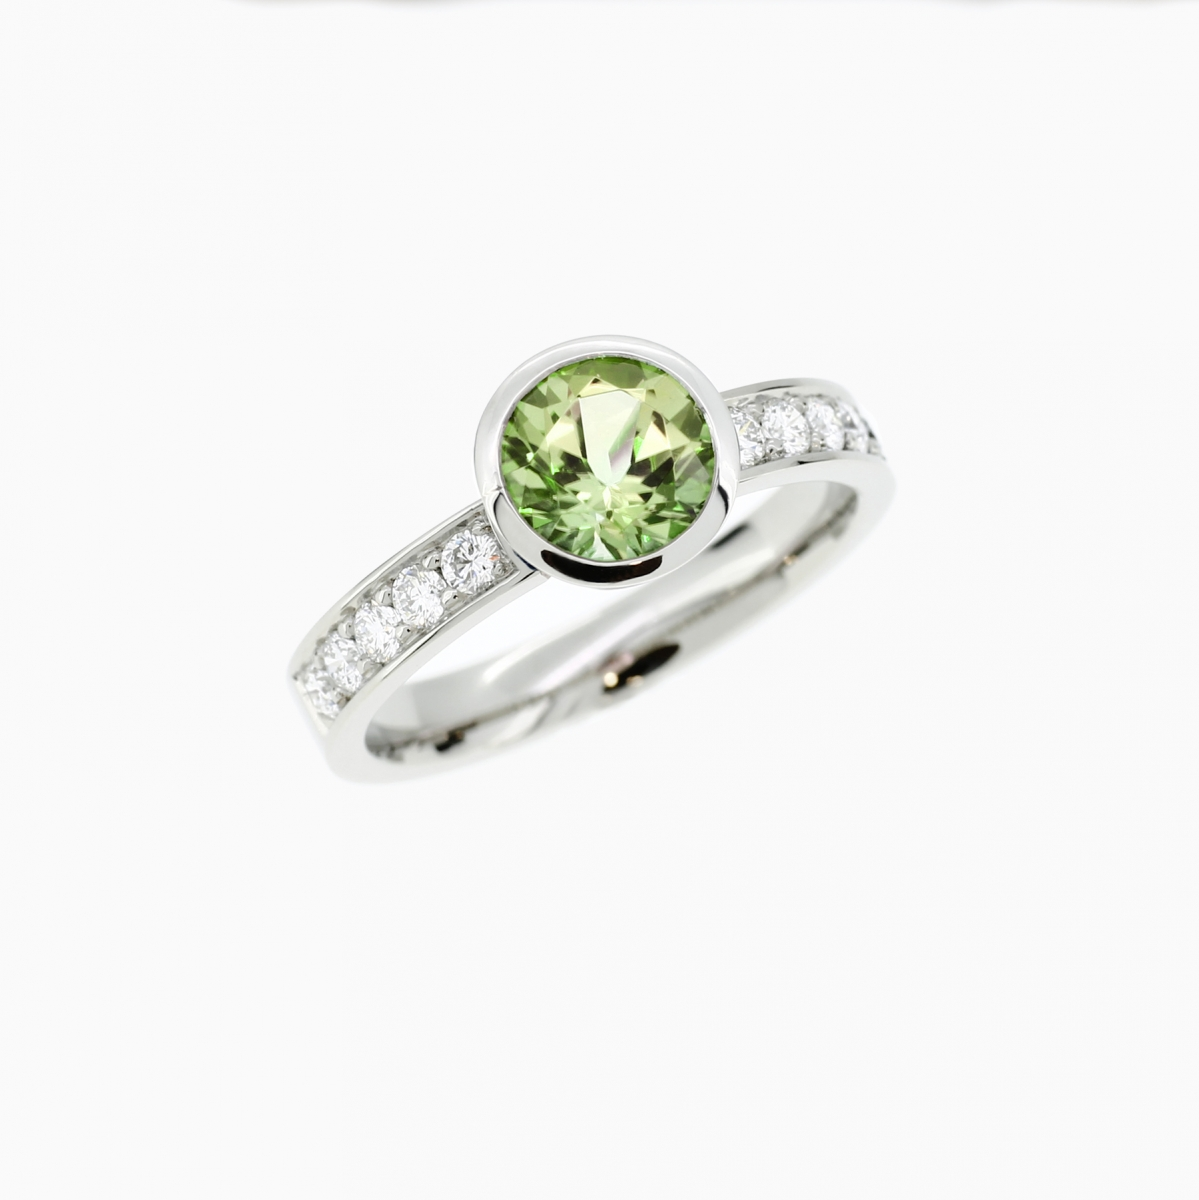 style rings s sterling silver wedding addiction designer peridot ring tiffany bubbles eve